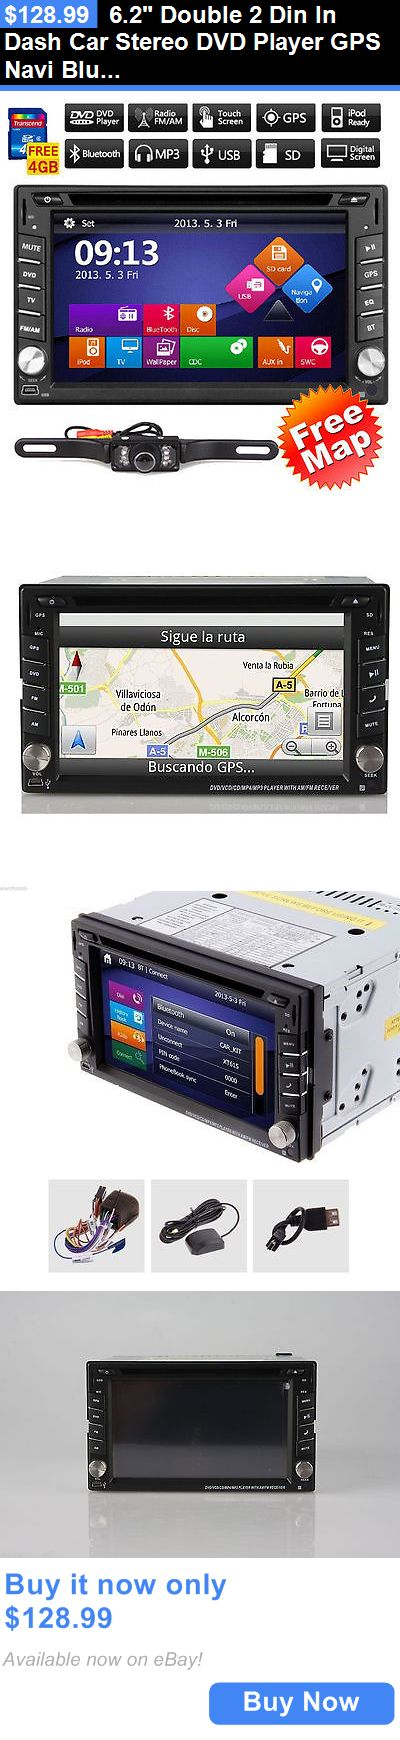 Vehicle Electronics And GPS: 6.2 Double 2 Din In Dash Car Stereo Dvd Player Gps Navi Bluetooth+Backup Camera BUY IT NOW ONLY: $128.99